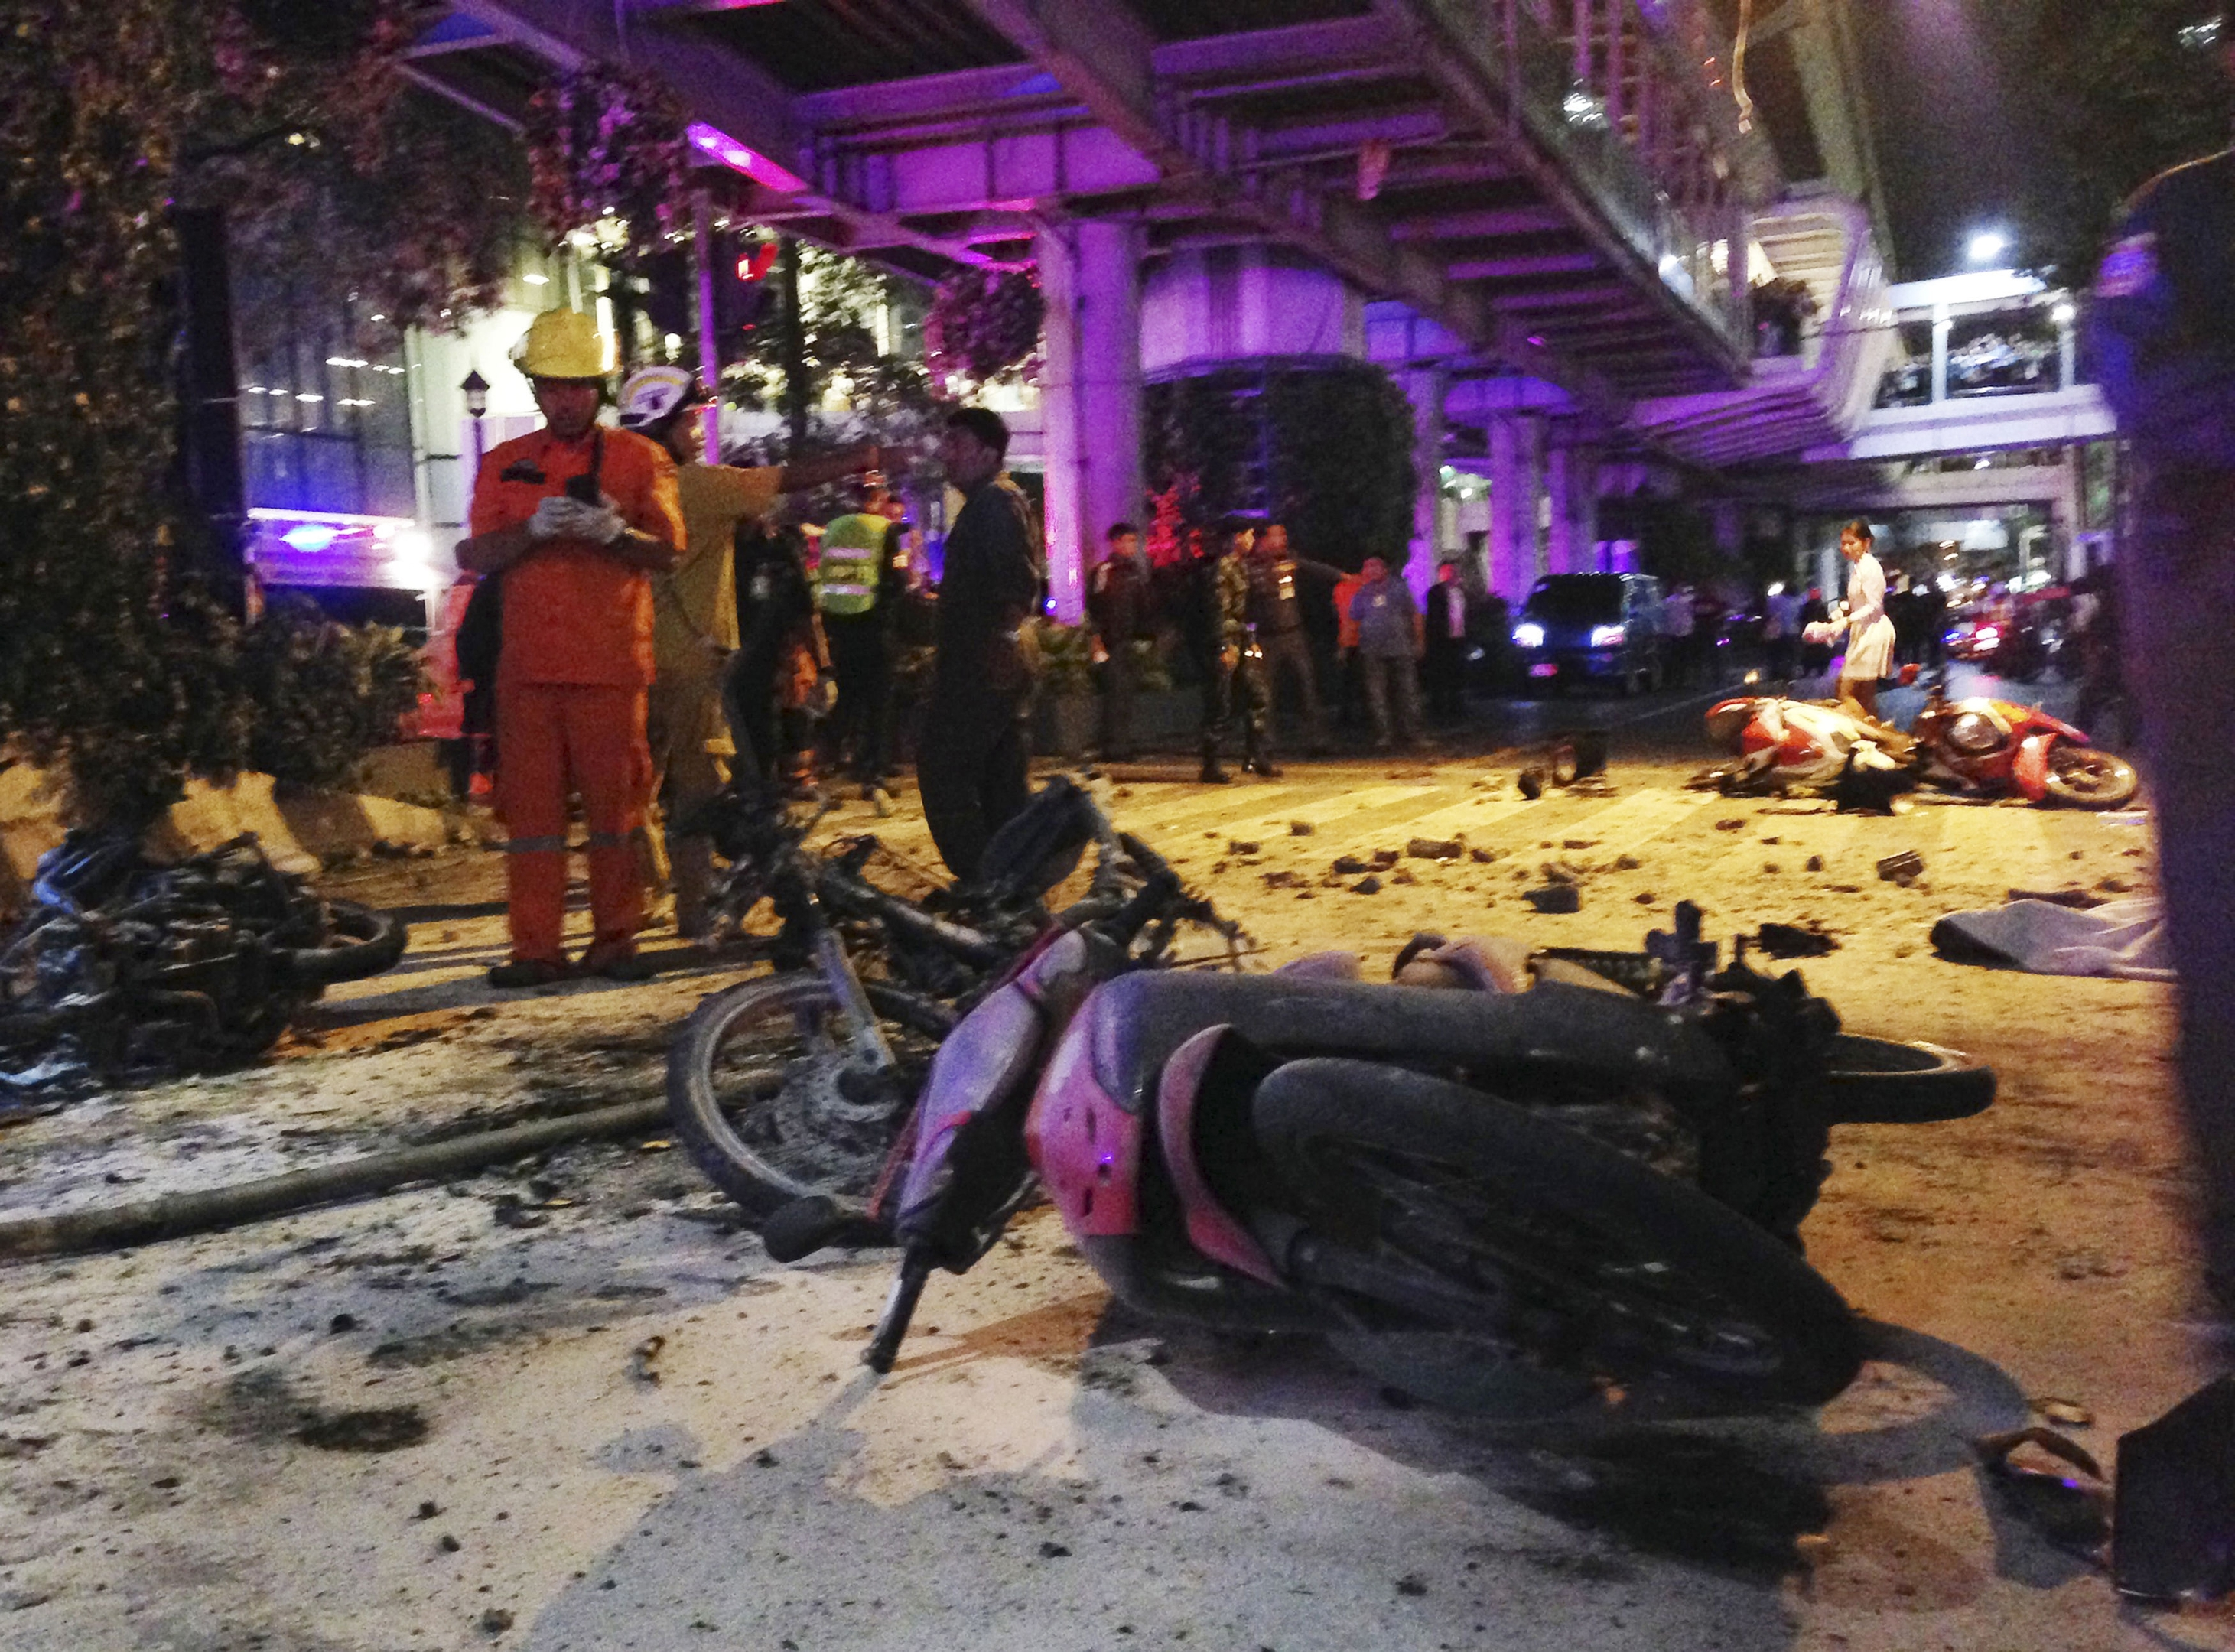 Motorcycles are strewn about after the bombing